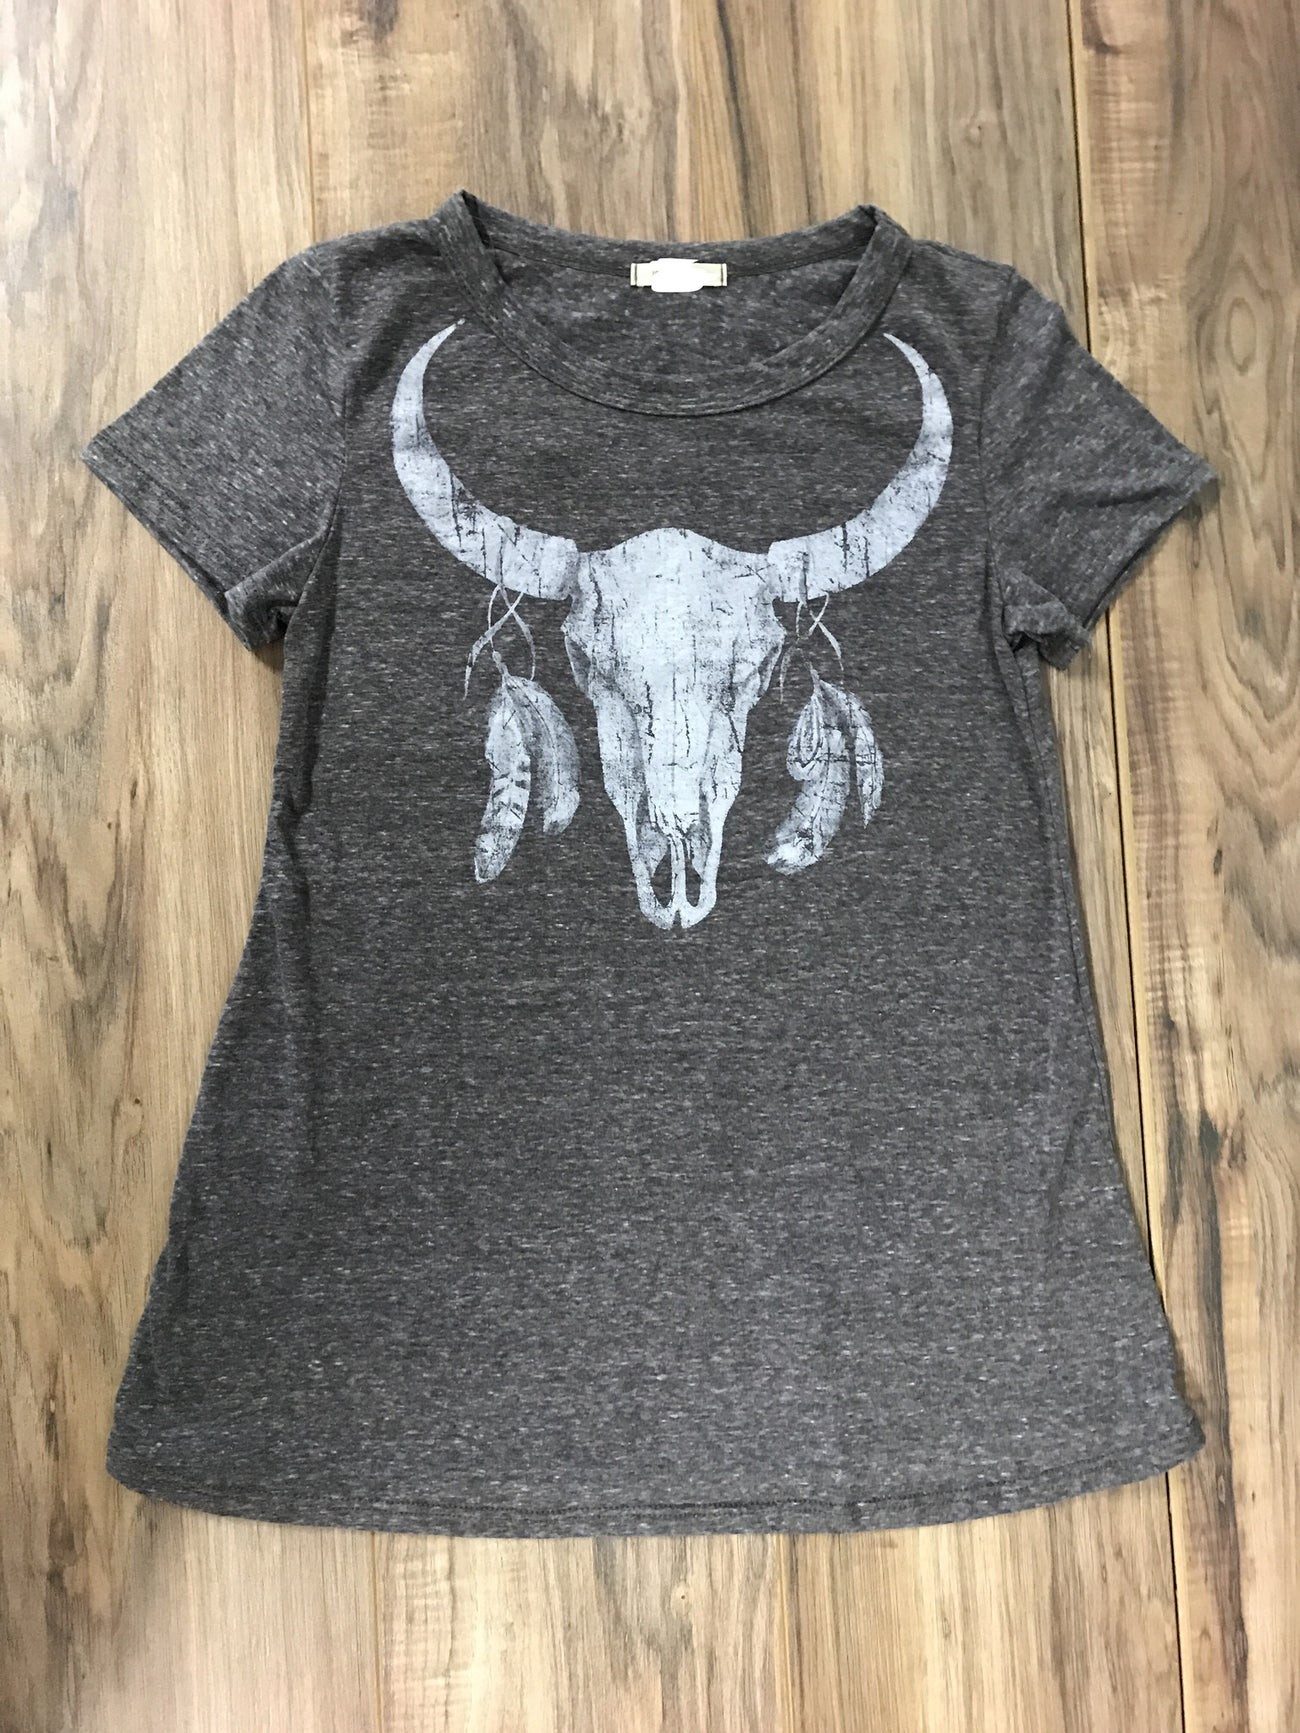 Jane - Maggie Jay Clothing, Tops - Women's clothing, Maggie Jay Clothing - online boutique, Maggie Jay Clothing - Maggie Jay Clothing